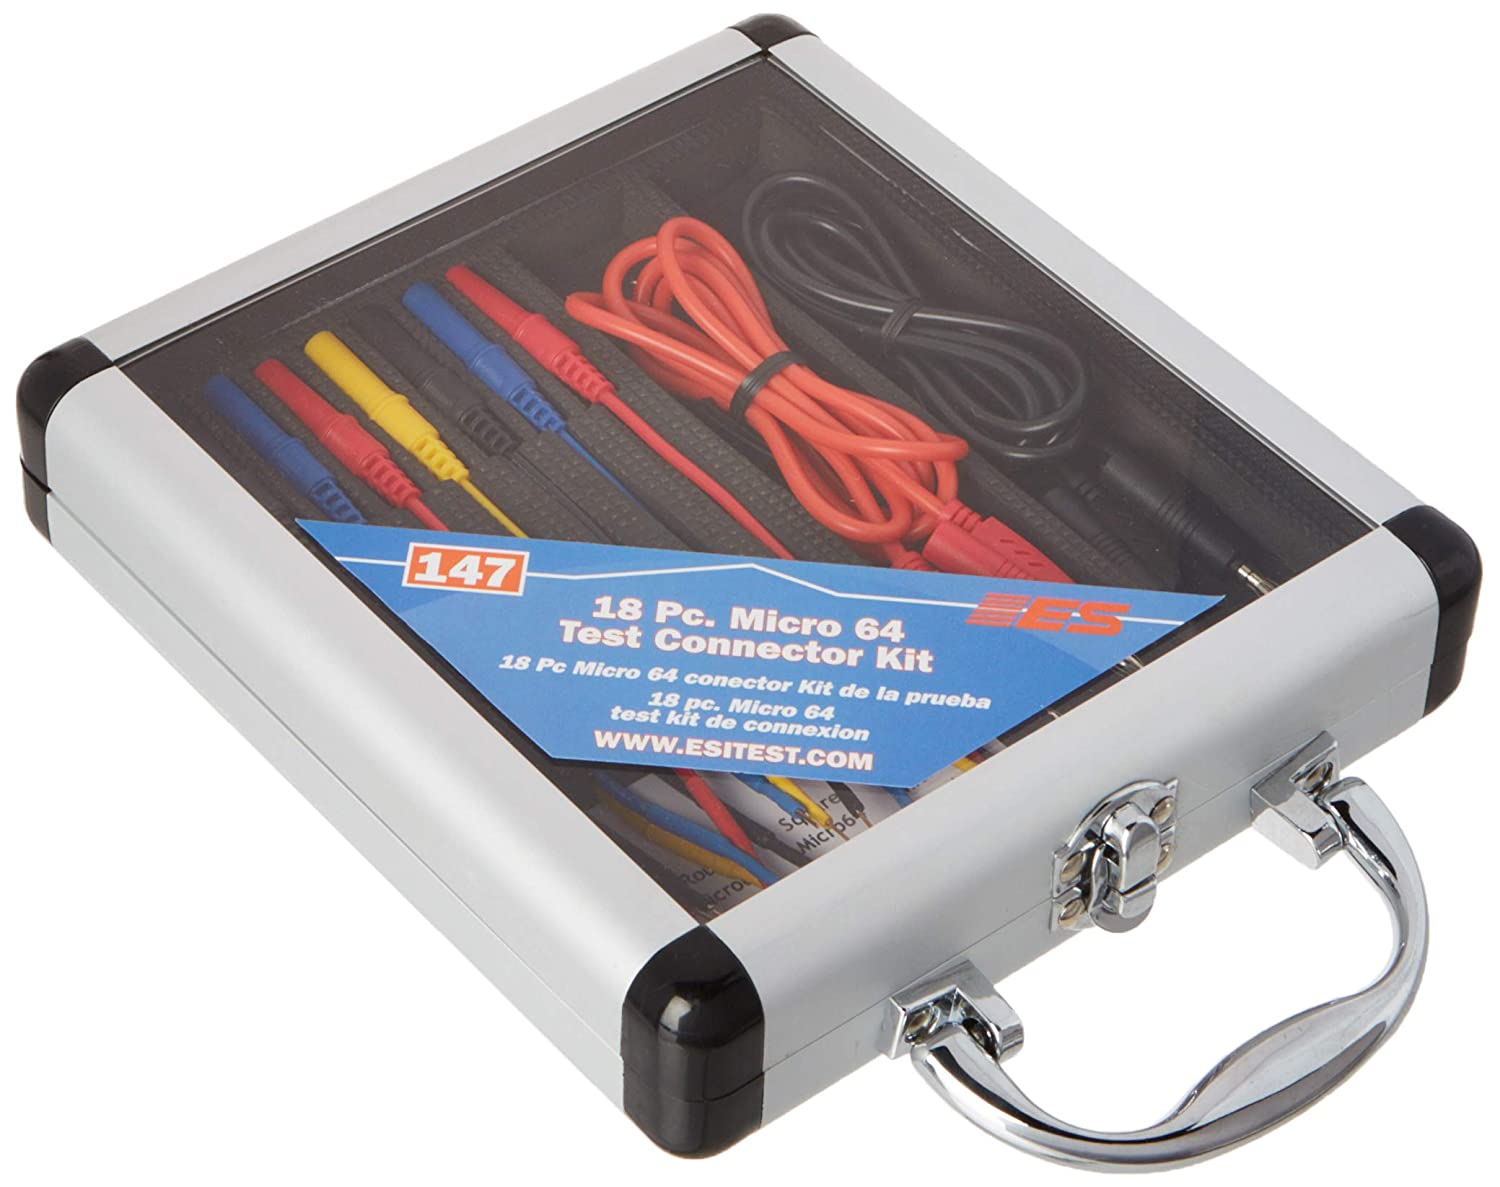 Electronic Specialties 147 Silver 7